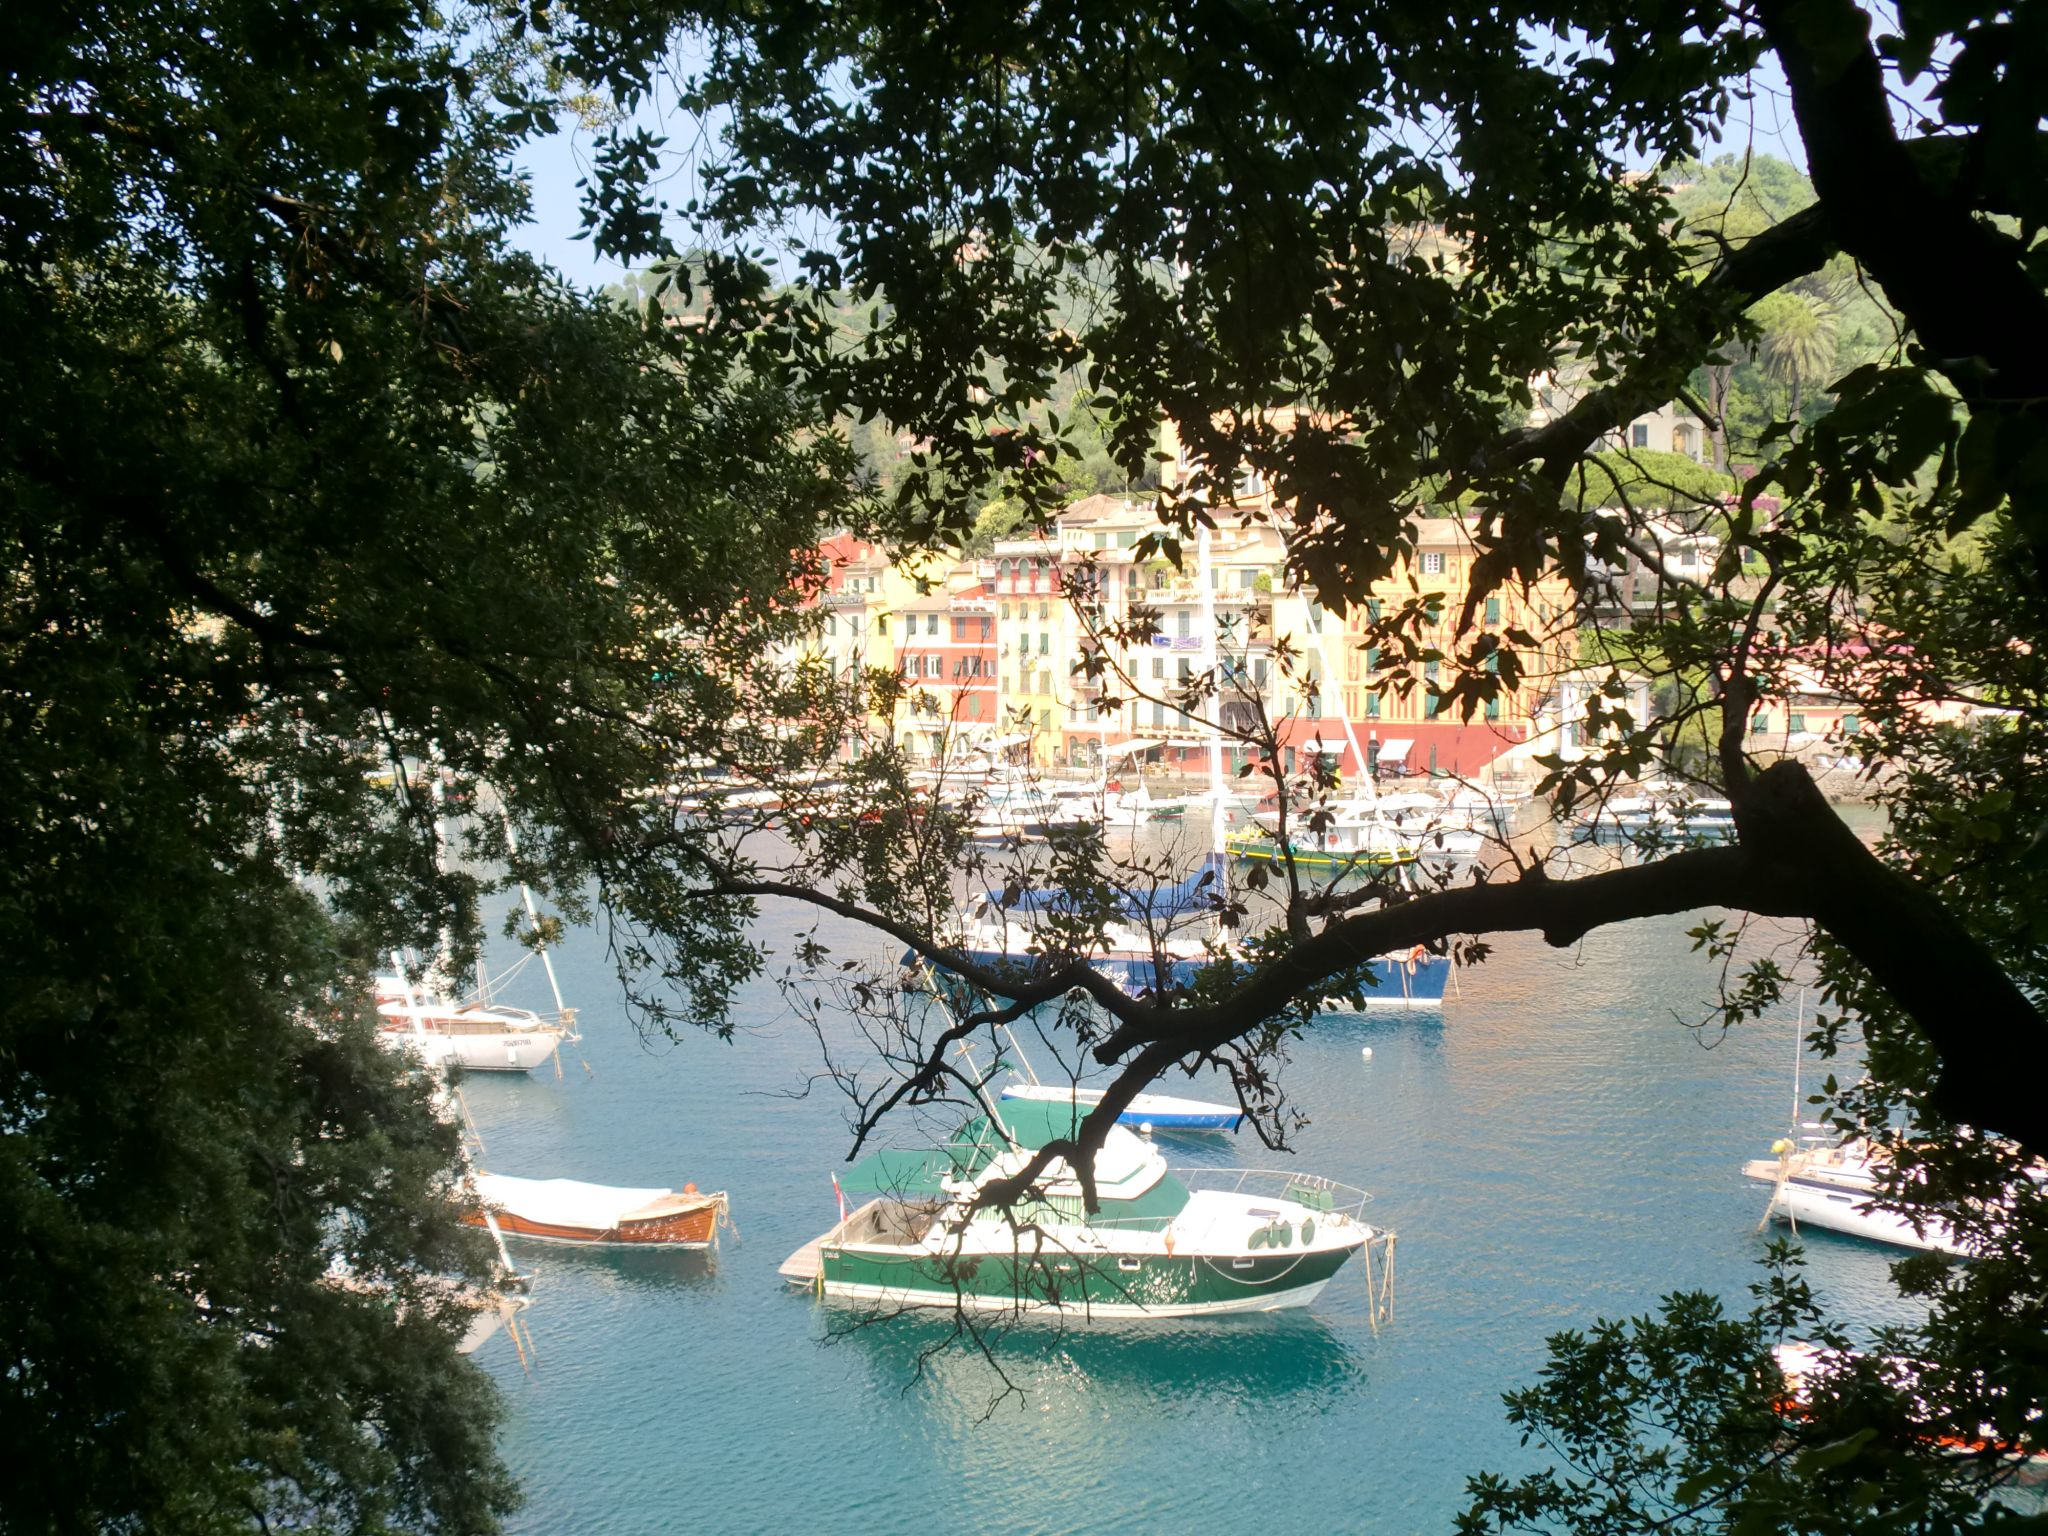 Portofino 23 - Portofino: a small pearl on the sea